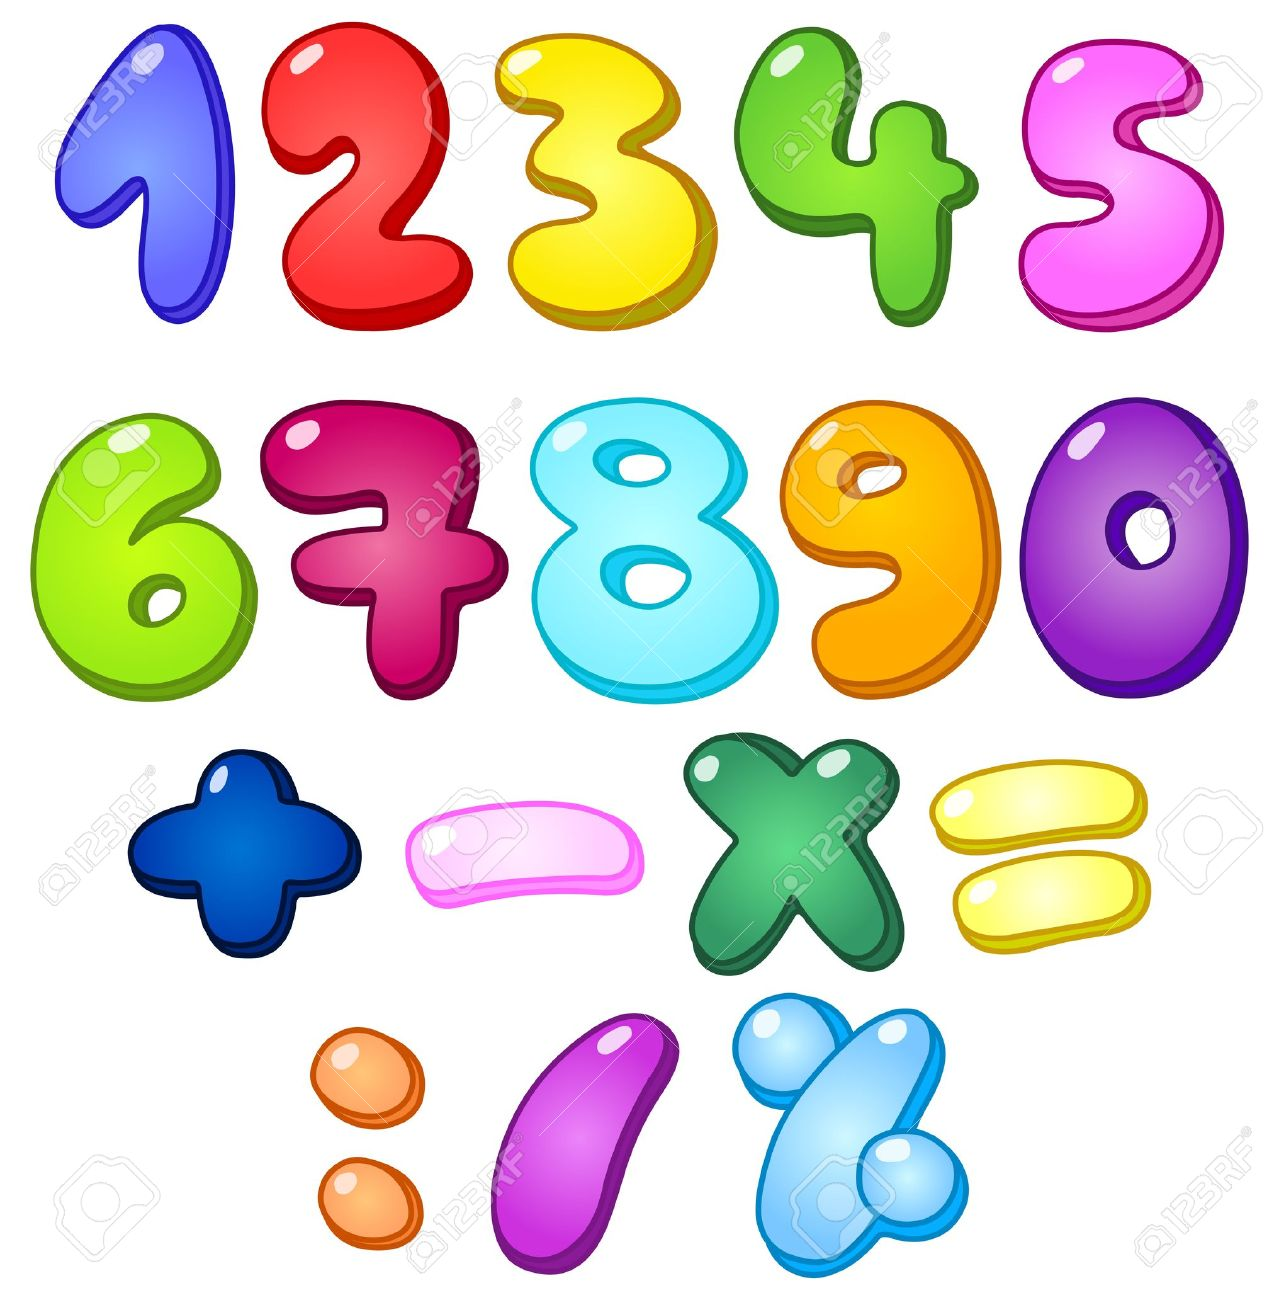 3d bubble shaped numbers and math signs set royalty free cliparts 3d bubble shaped numbers and math signs set stock vector 16582470 biocorpaavc Image collections